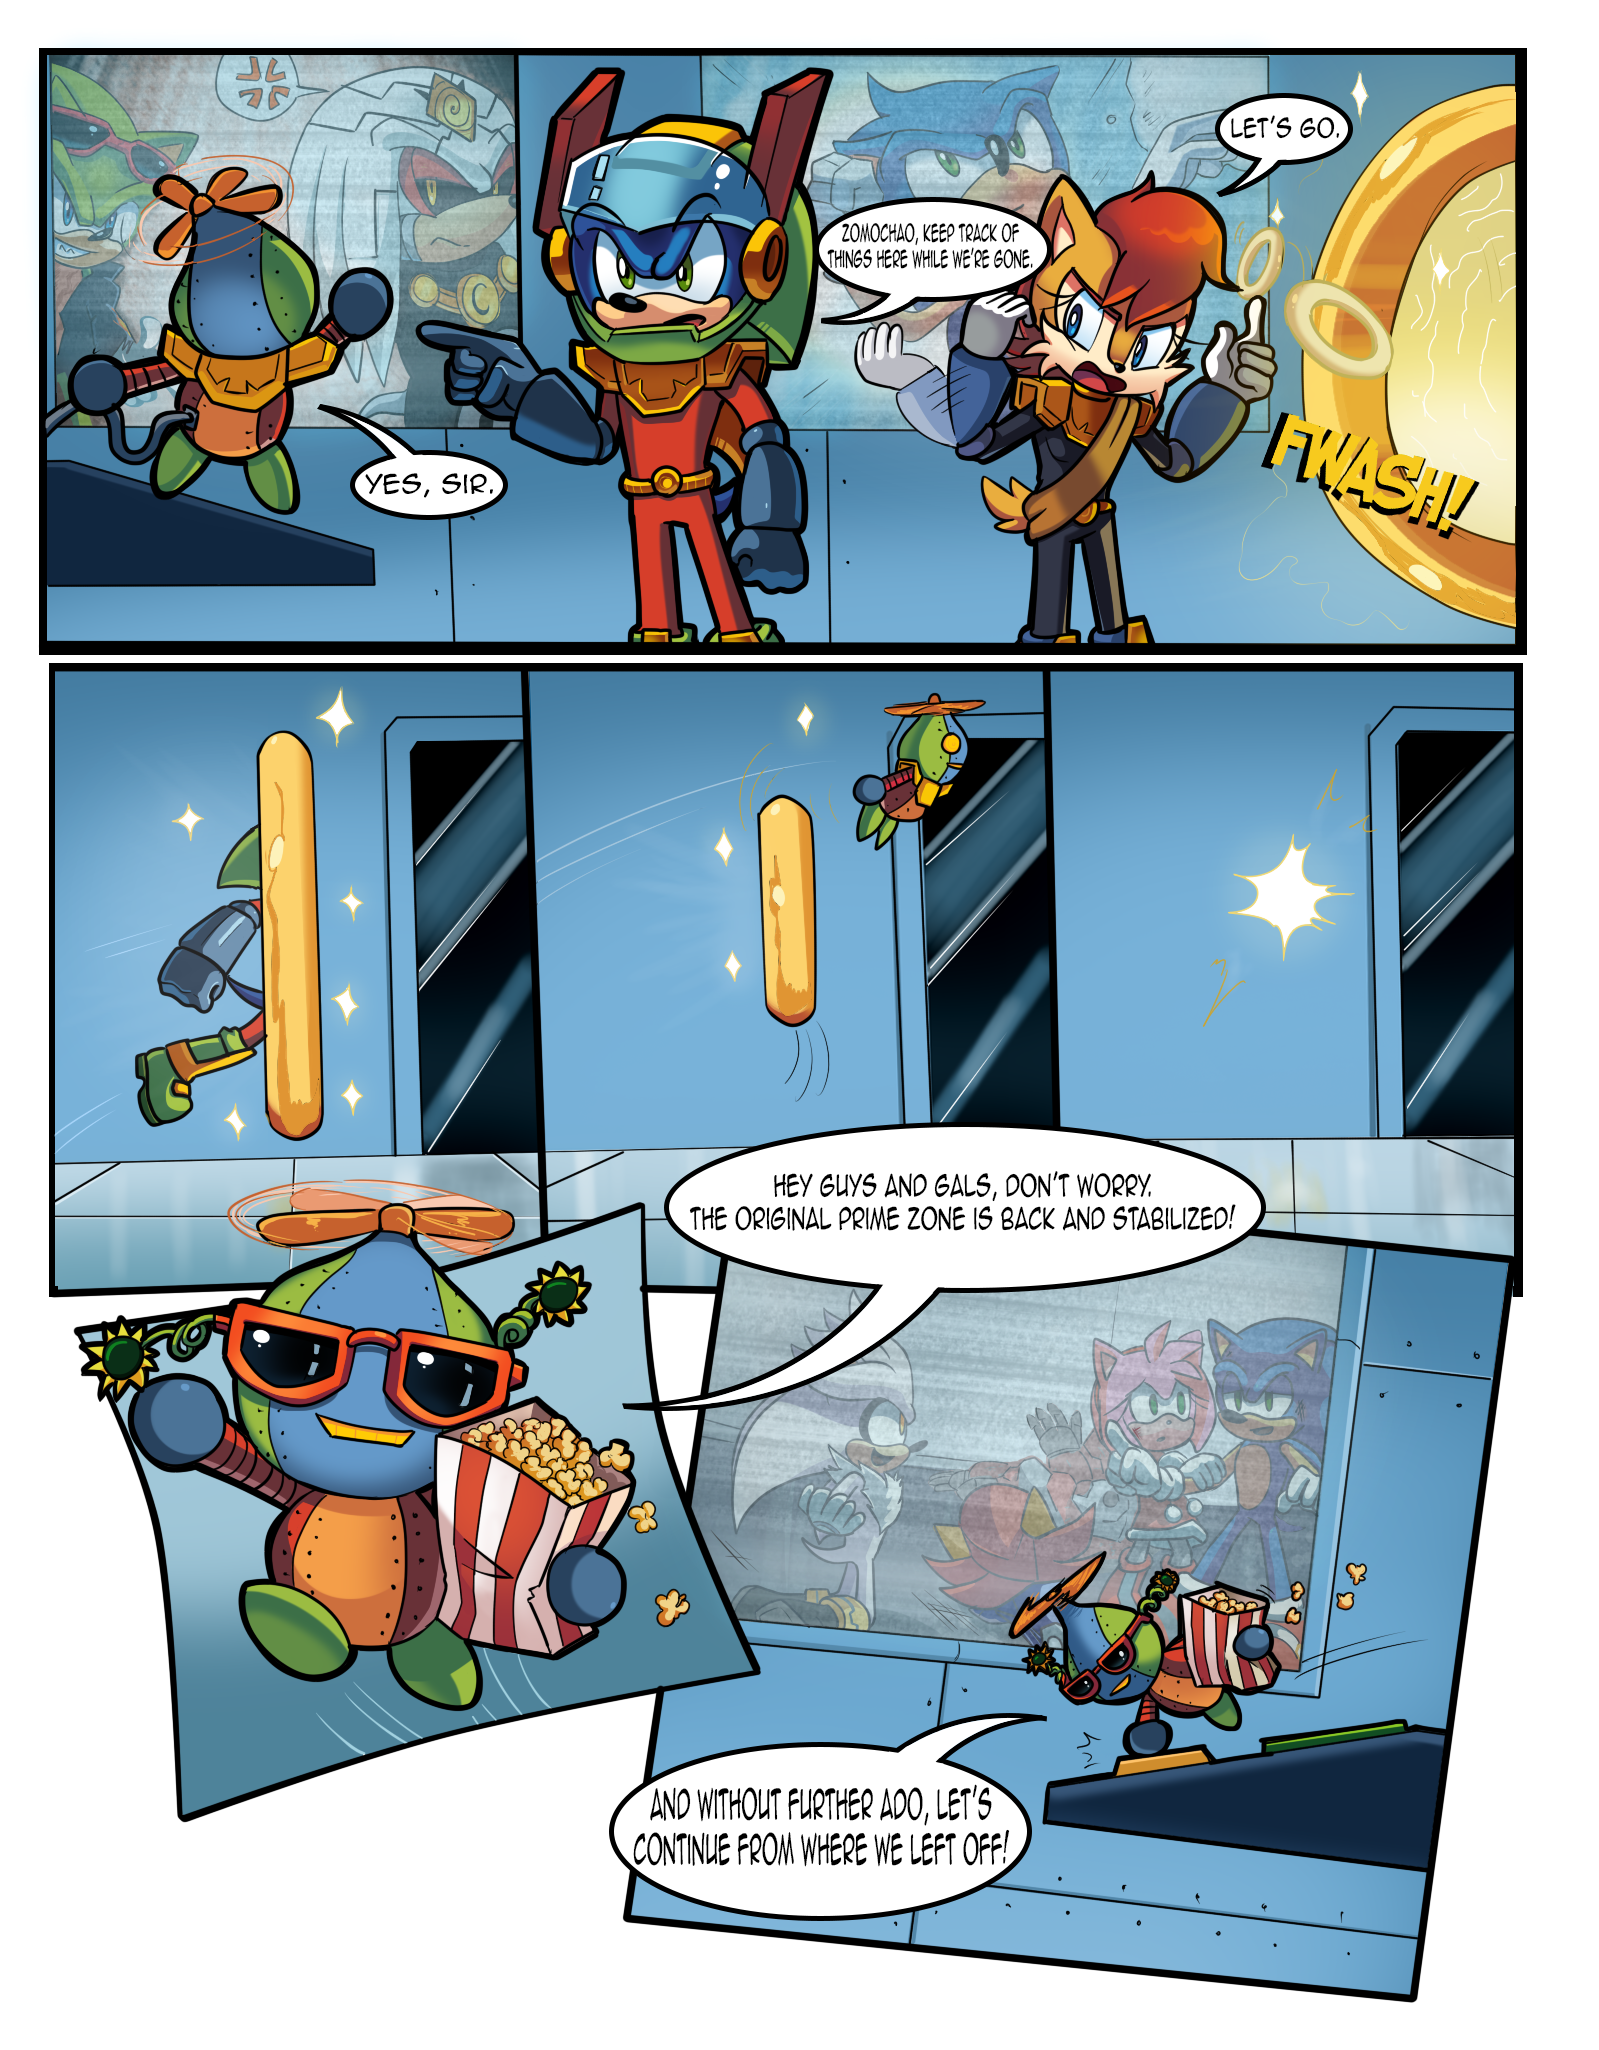 Mobius Legends Issue #1 - Page 6 (Old) by Yarcaz on DeviantArt